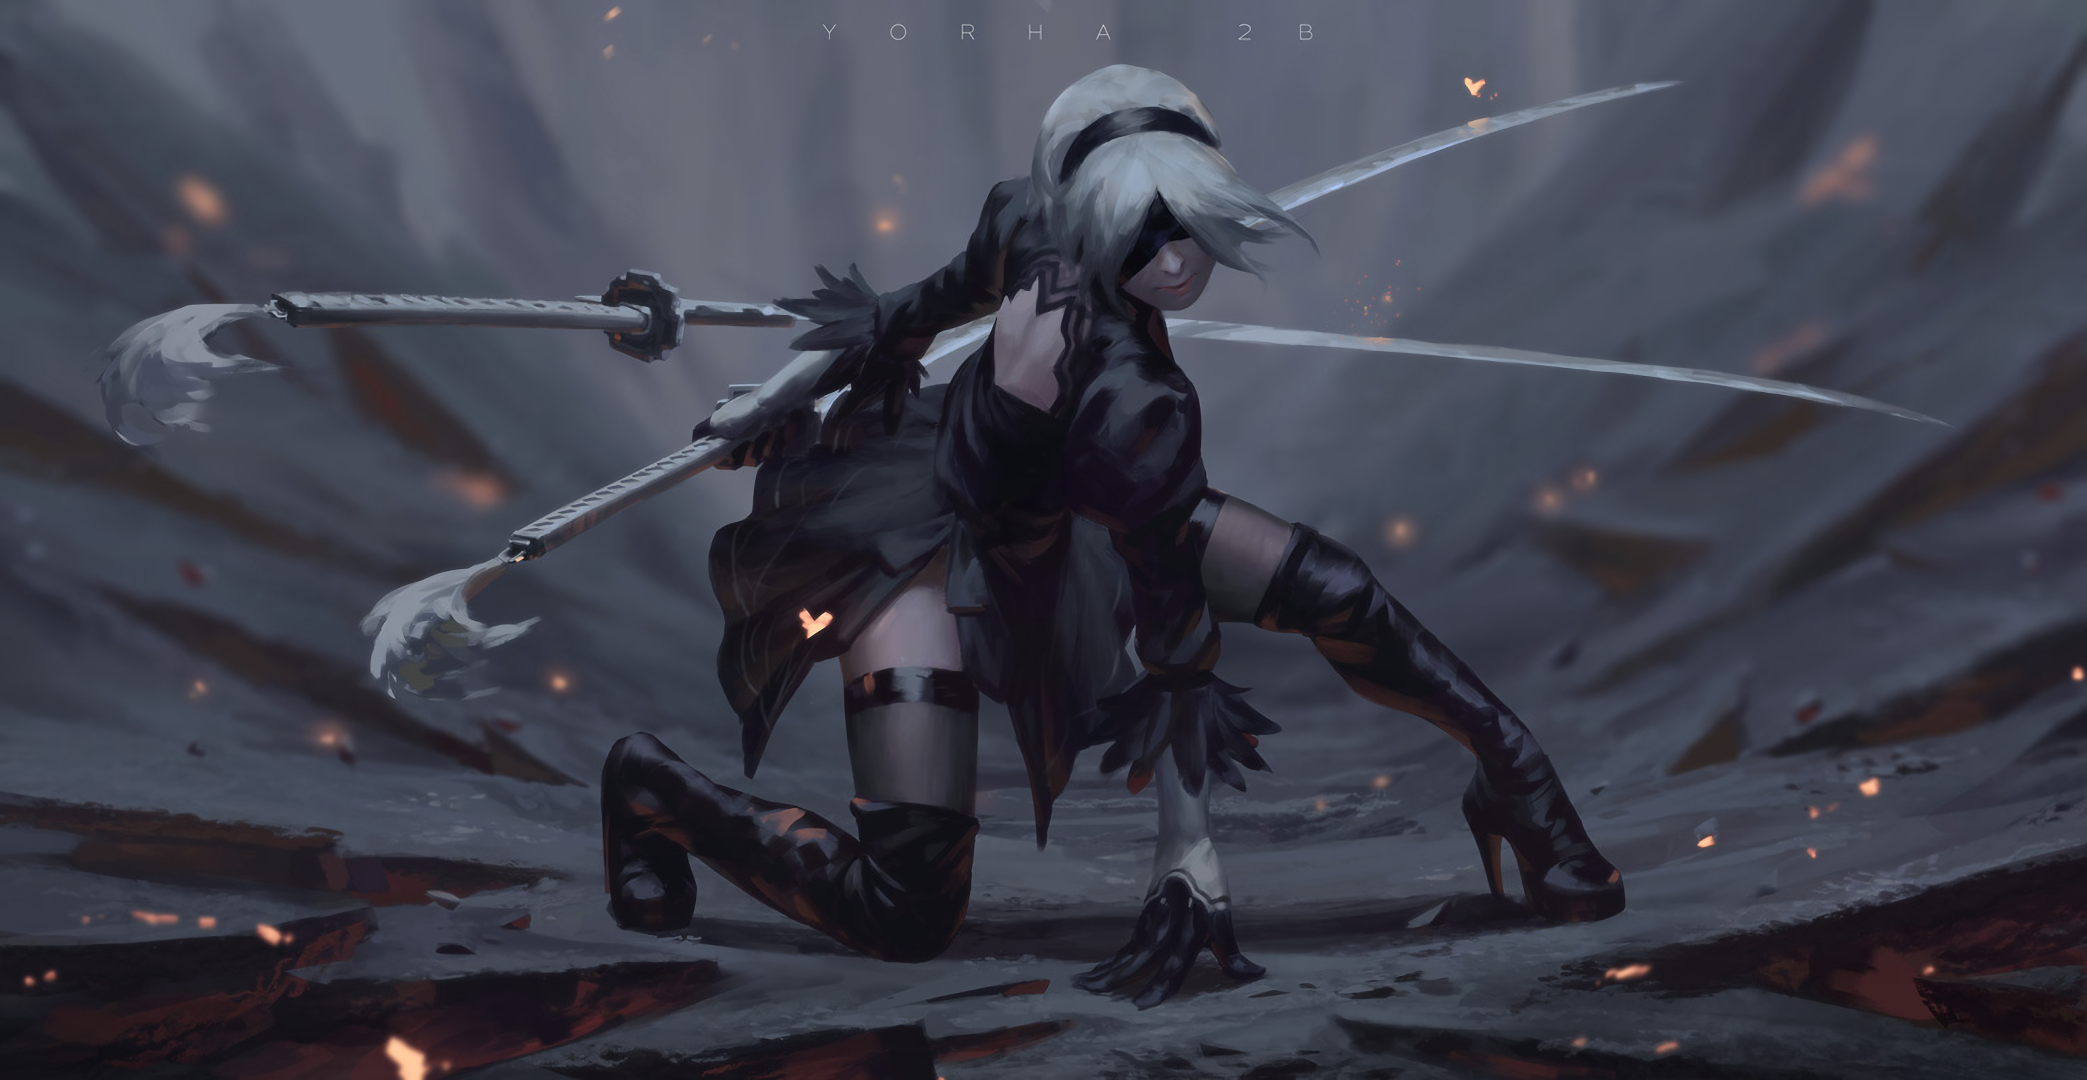 Nier Automata Fan Art Wallpaper 01 1920x1080: NieR: Automata HD Wallpaper